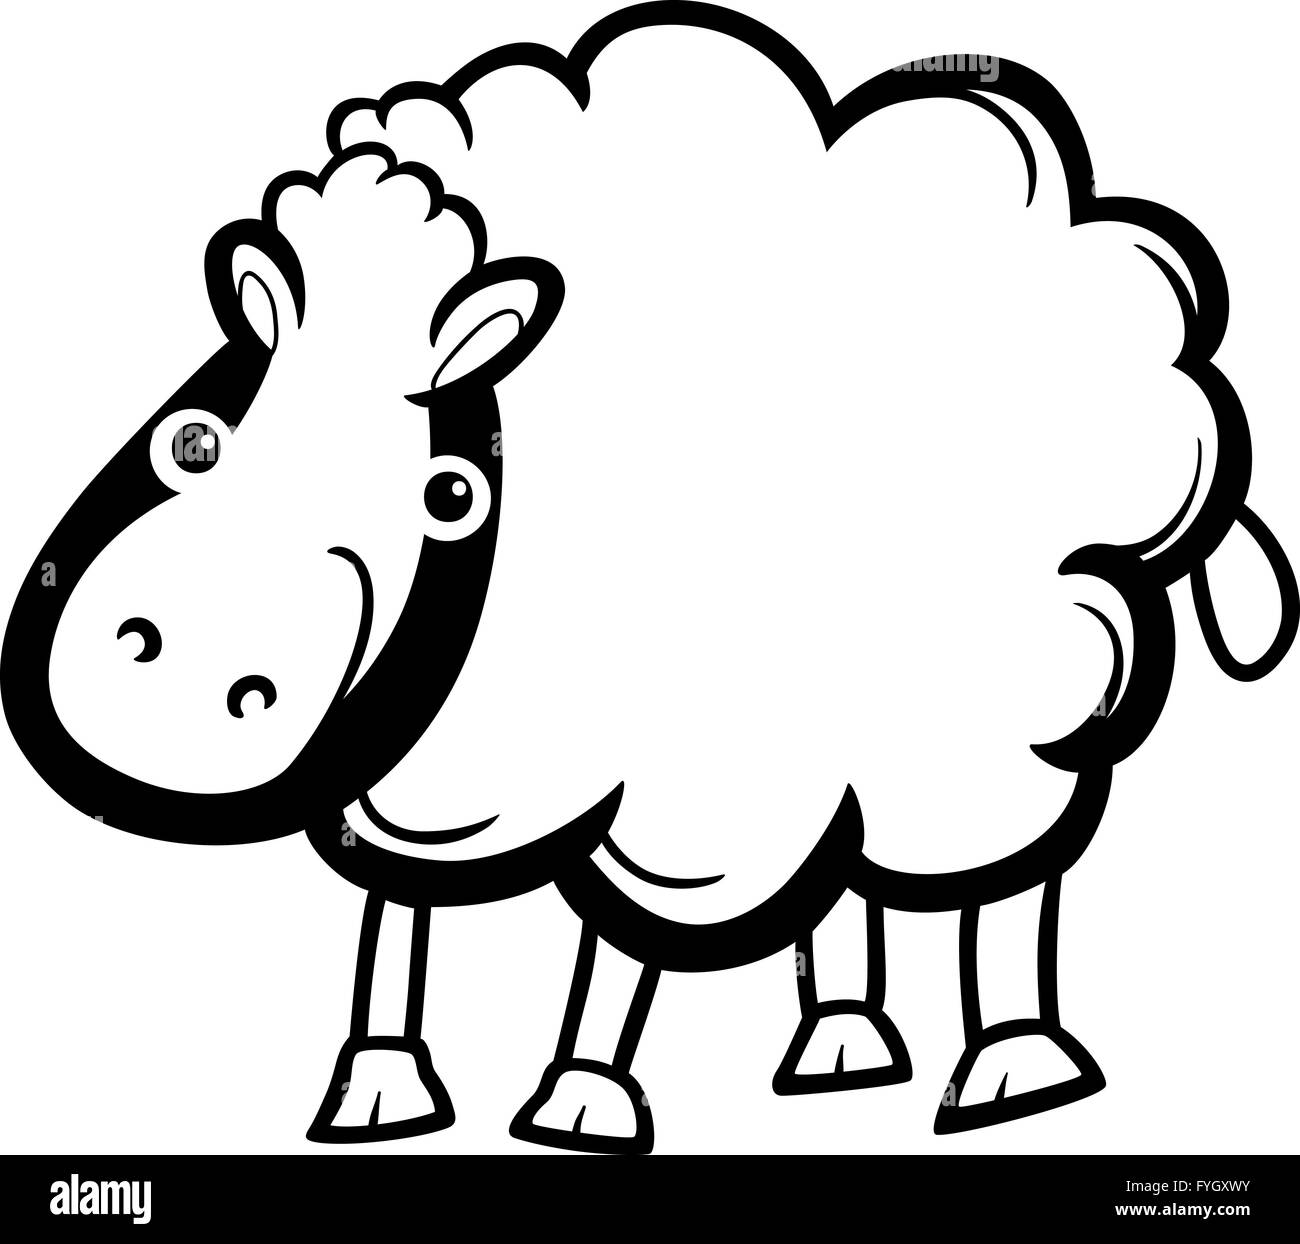 Cartoon Sheep Imágenes De Stock & Cartoon Sheep Fotos De Stock ...